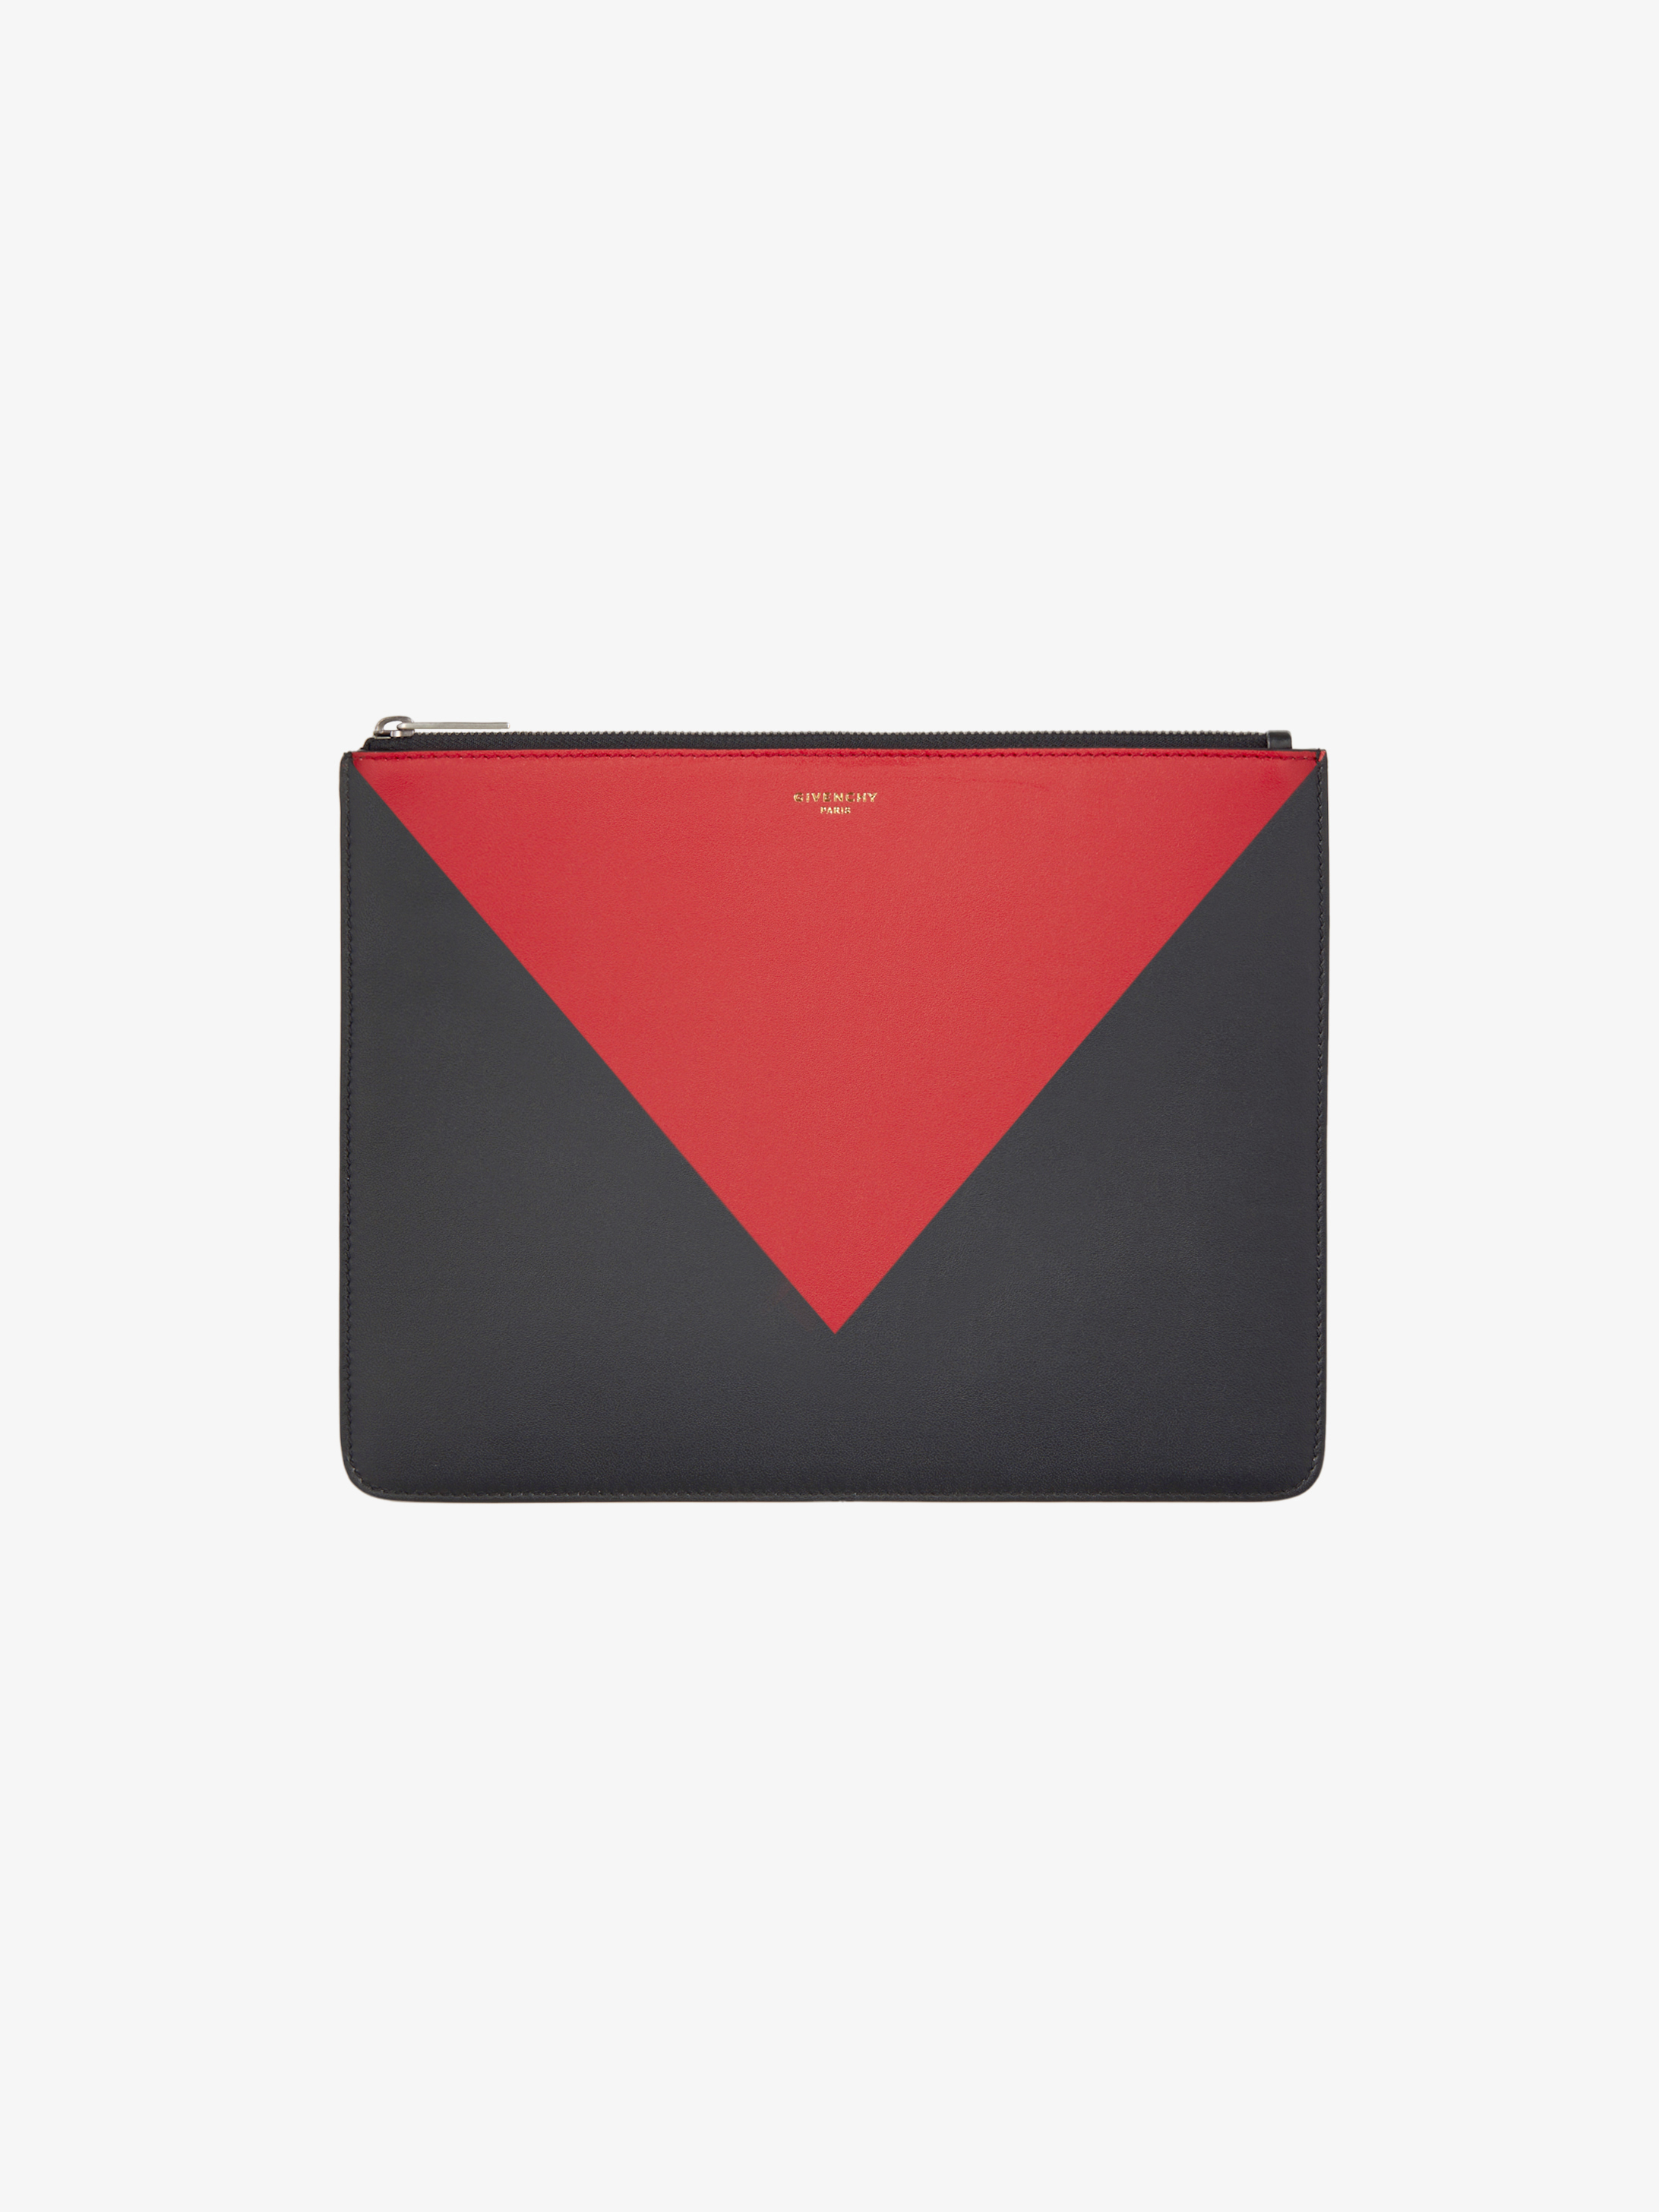 Two-toned Large pouch in leather